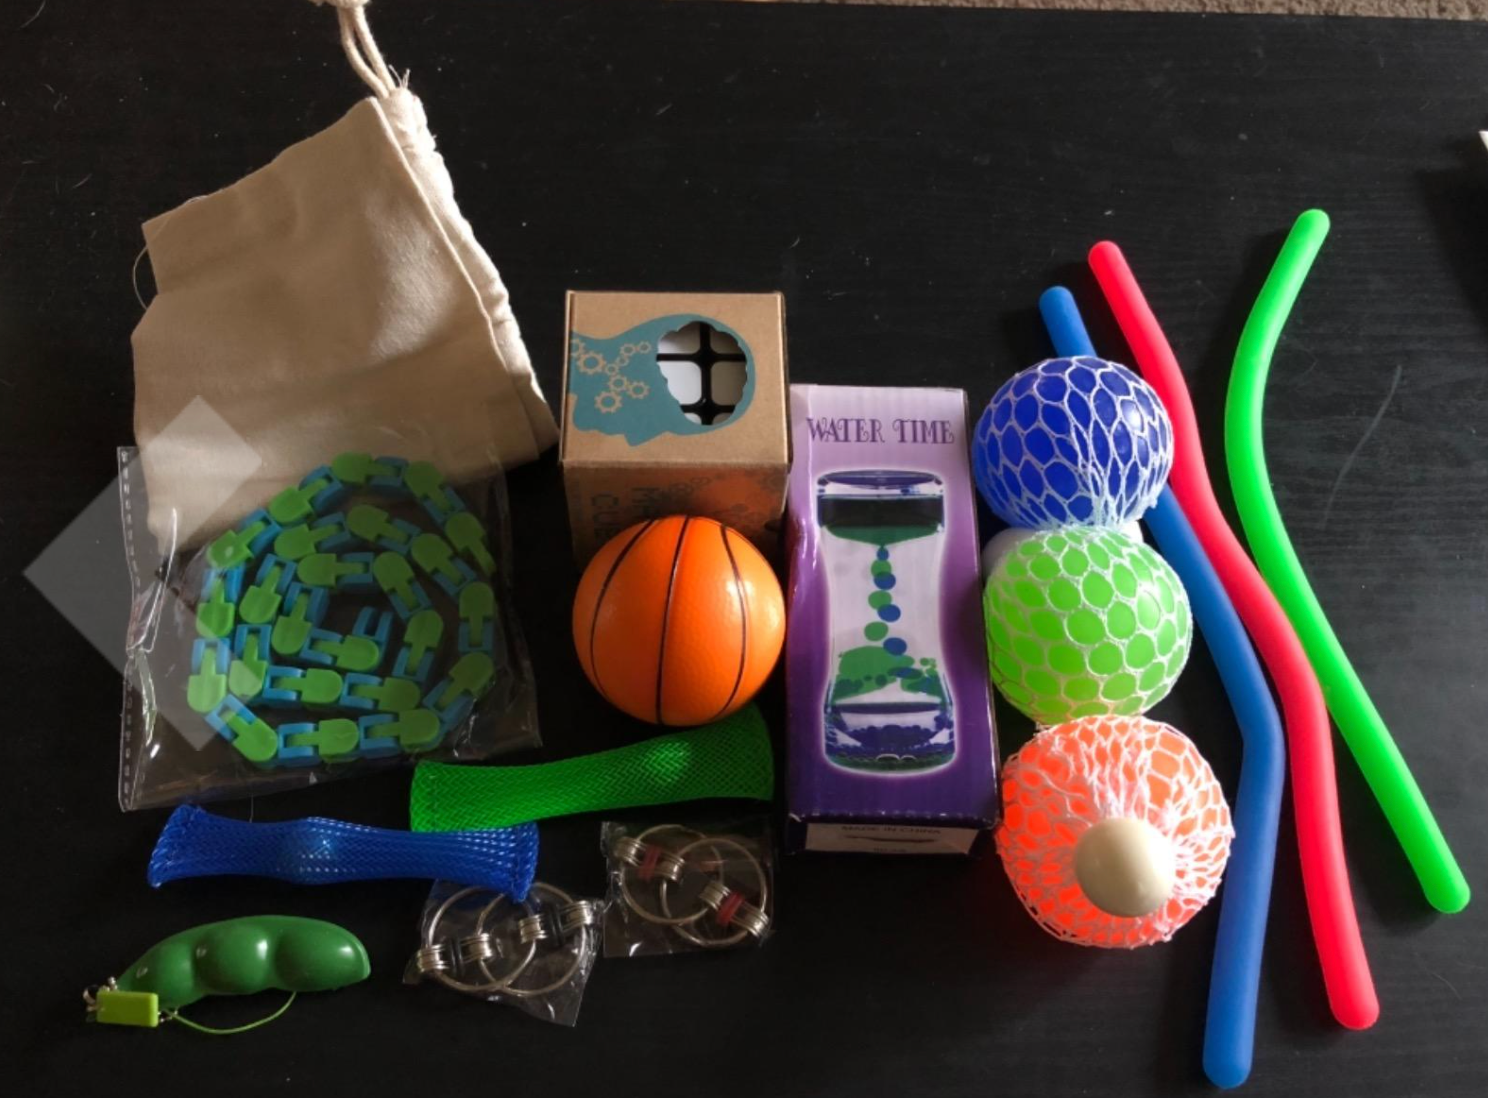 Customer image of toys laid out on table